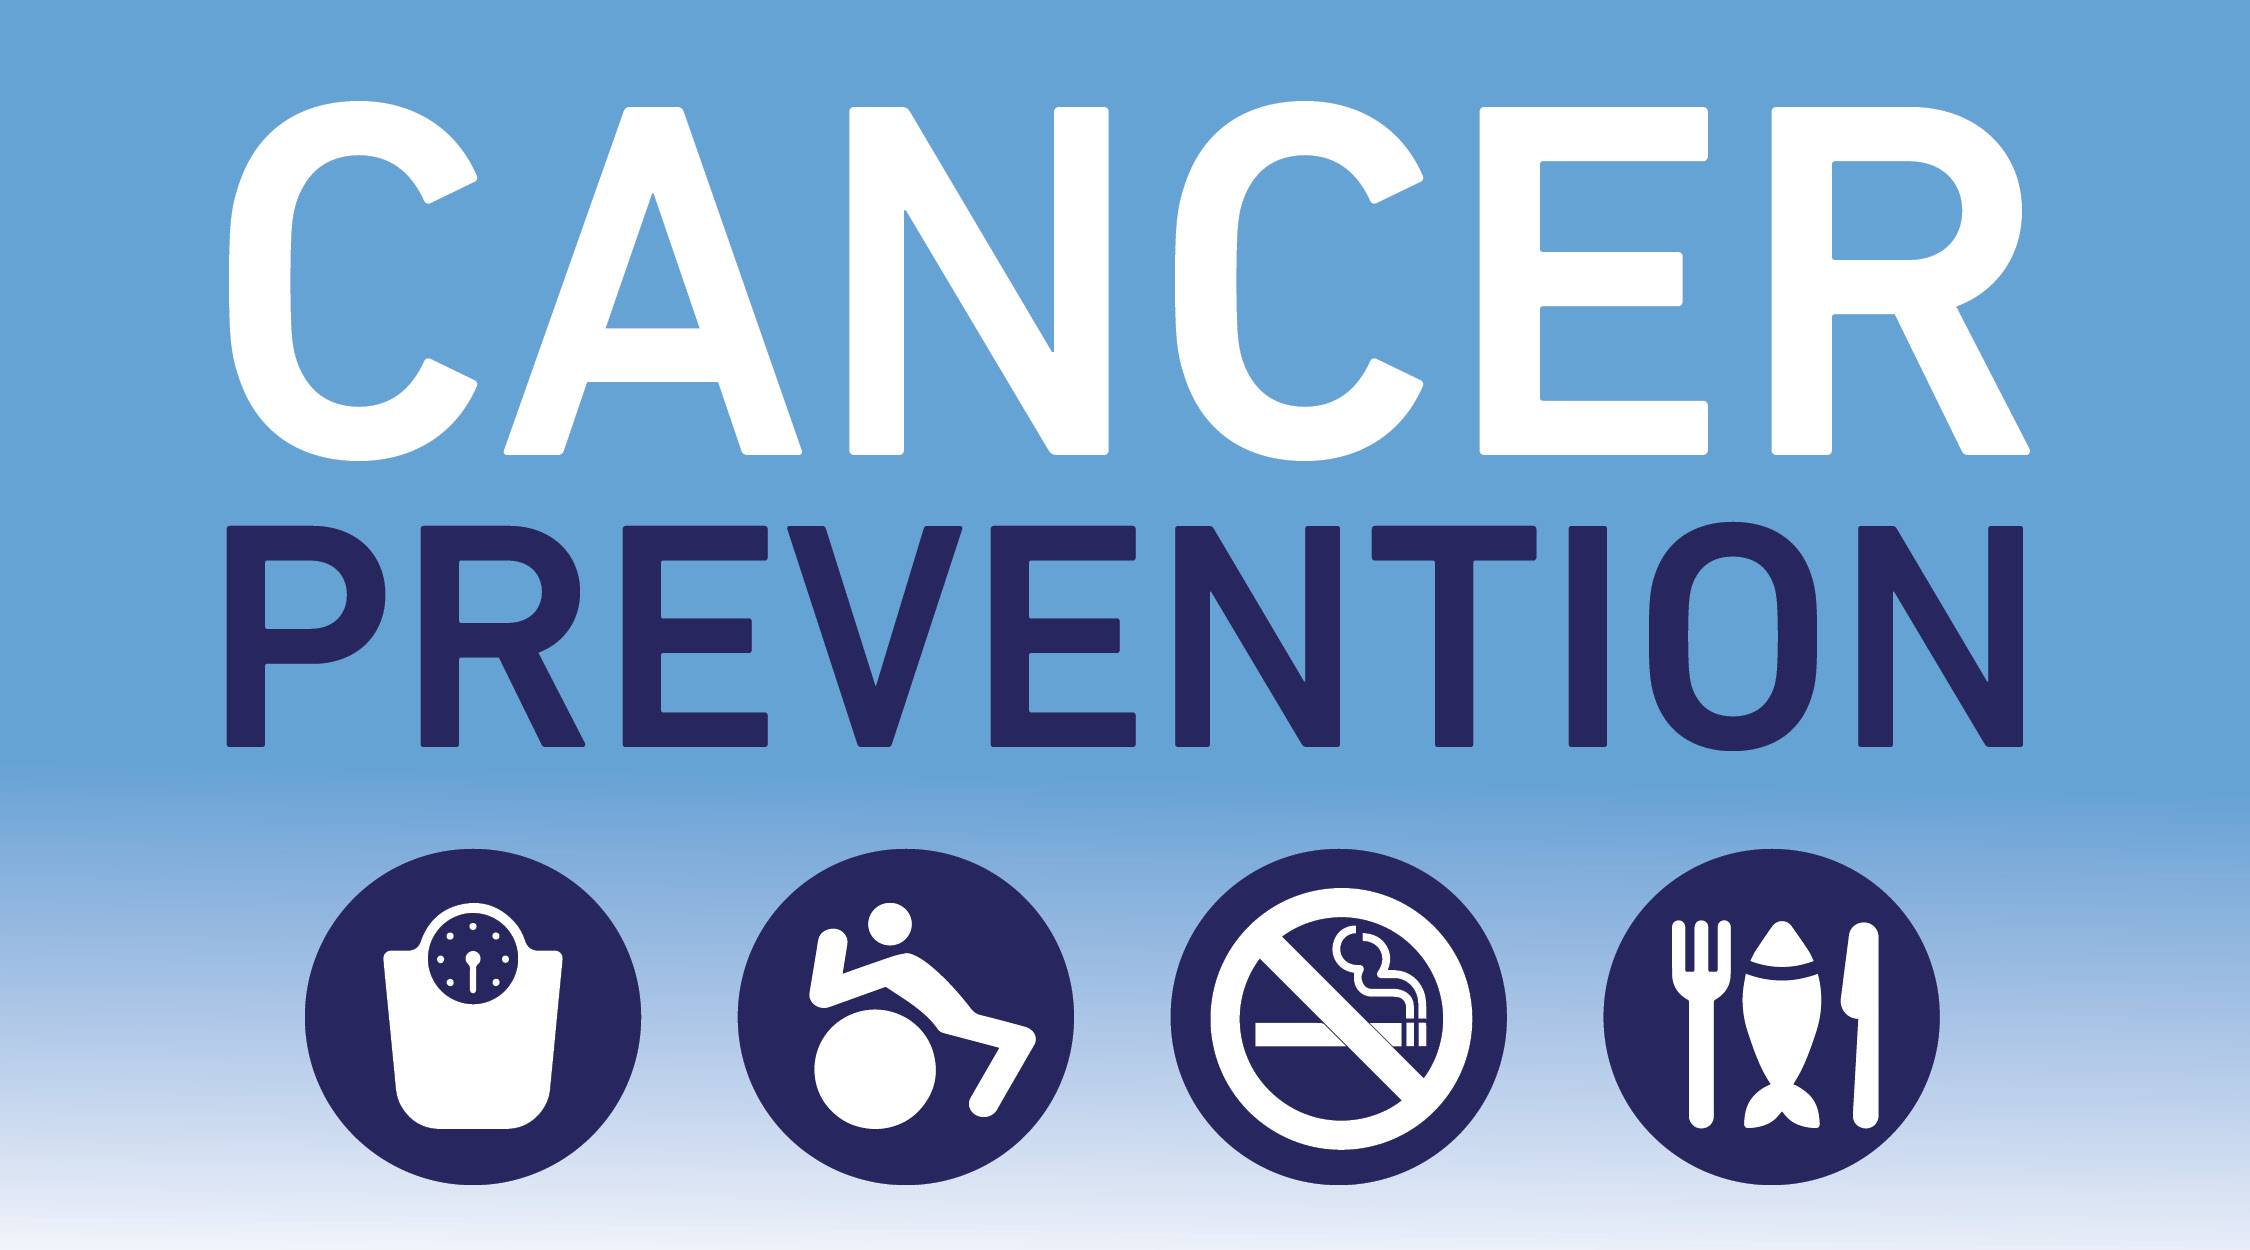 colon cancer prevention project